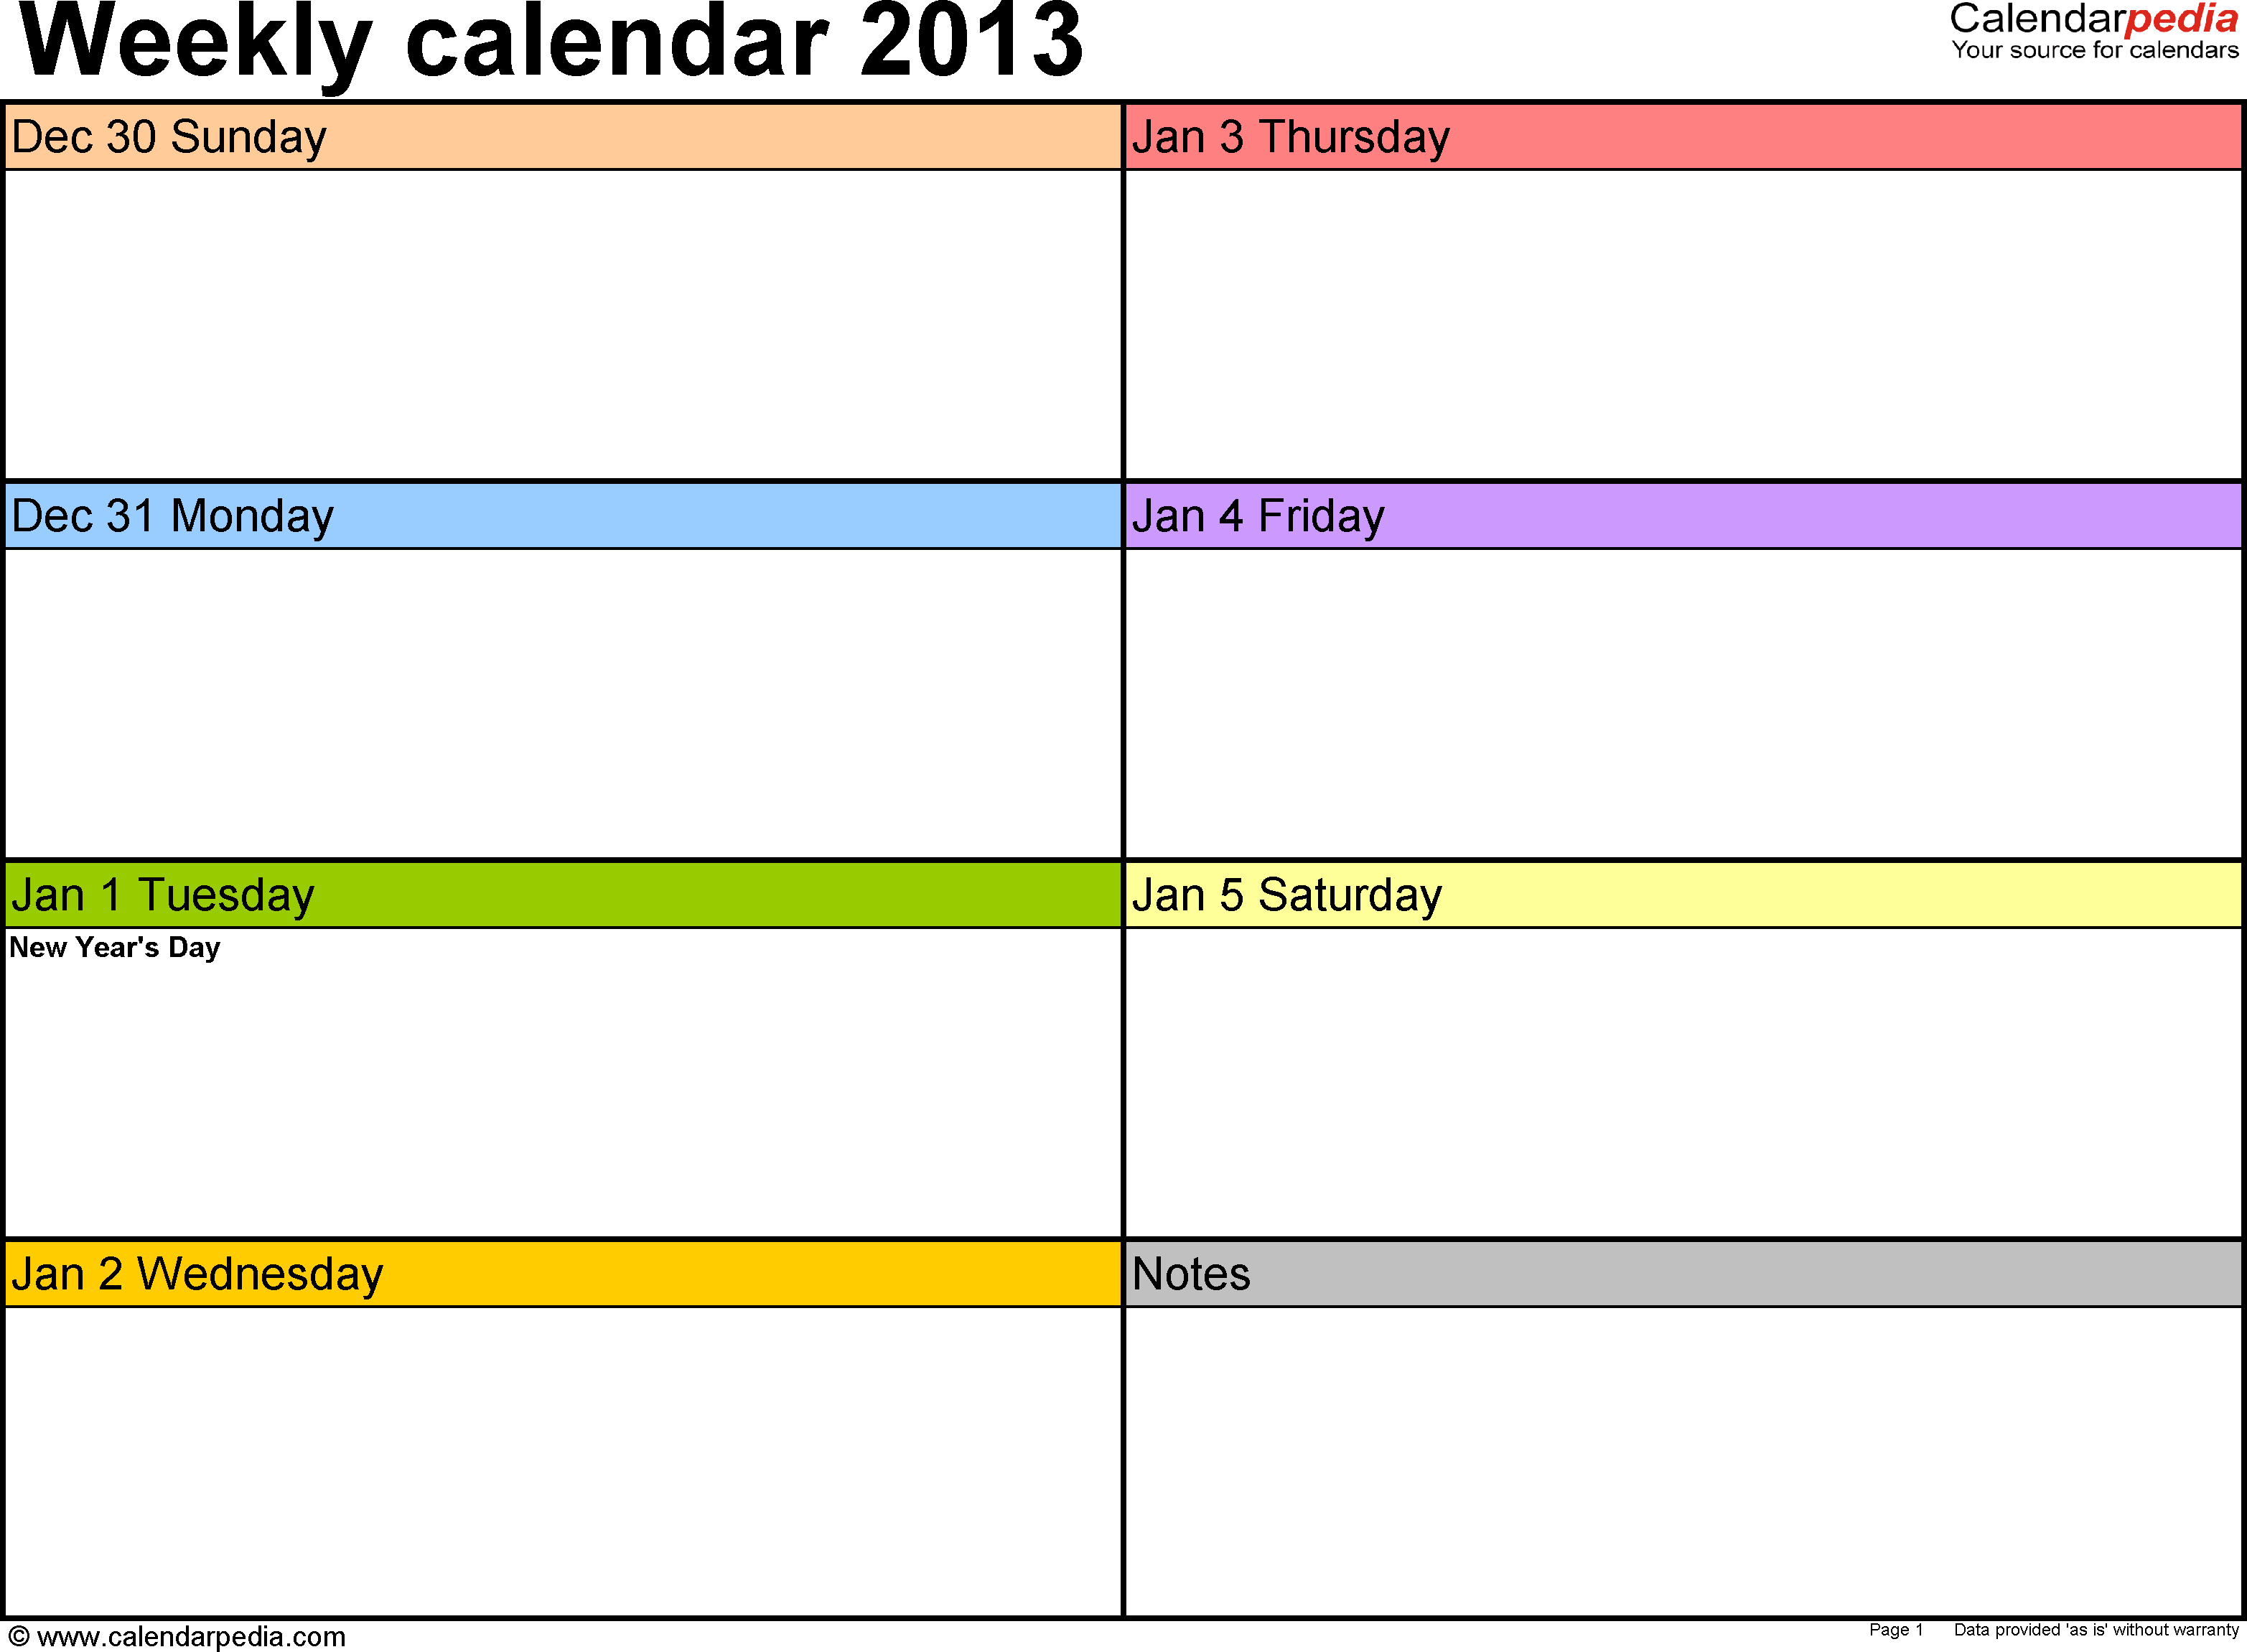 Weekly Calendars 2013 For Pdf  4 Free Printable Templates in 7 Days A Week Planner